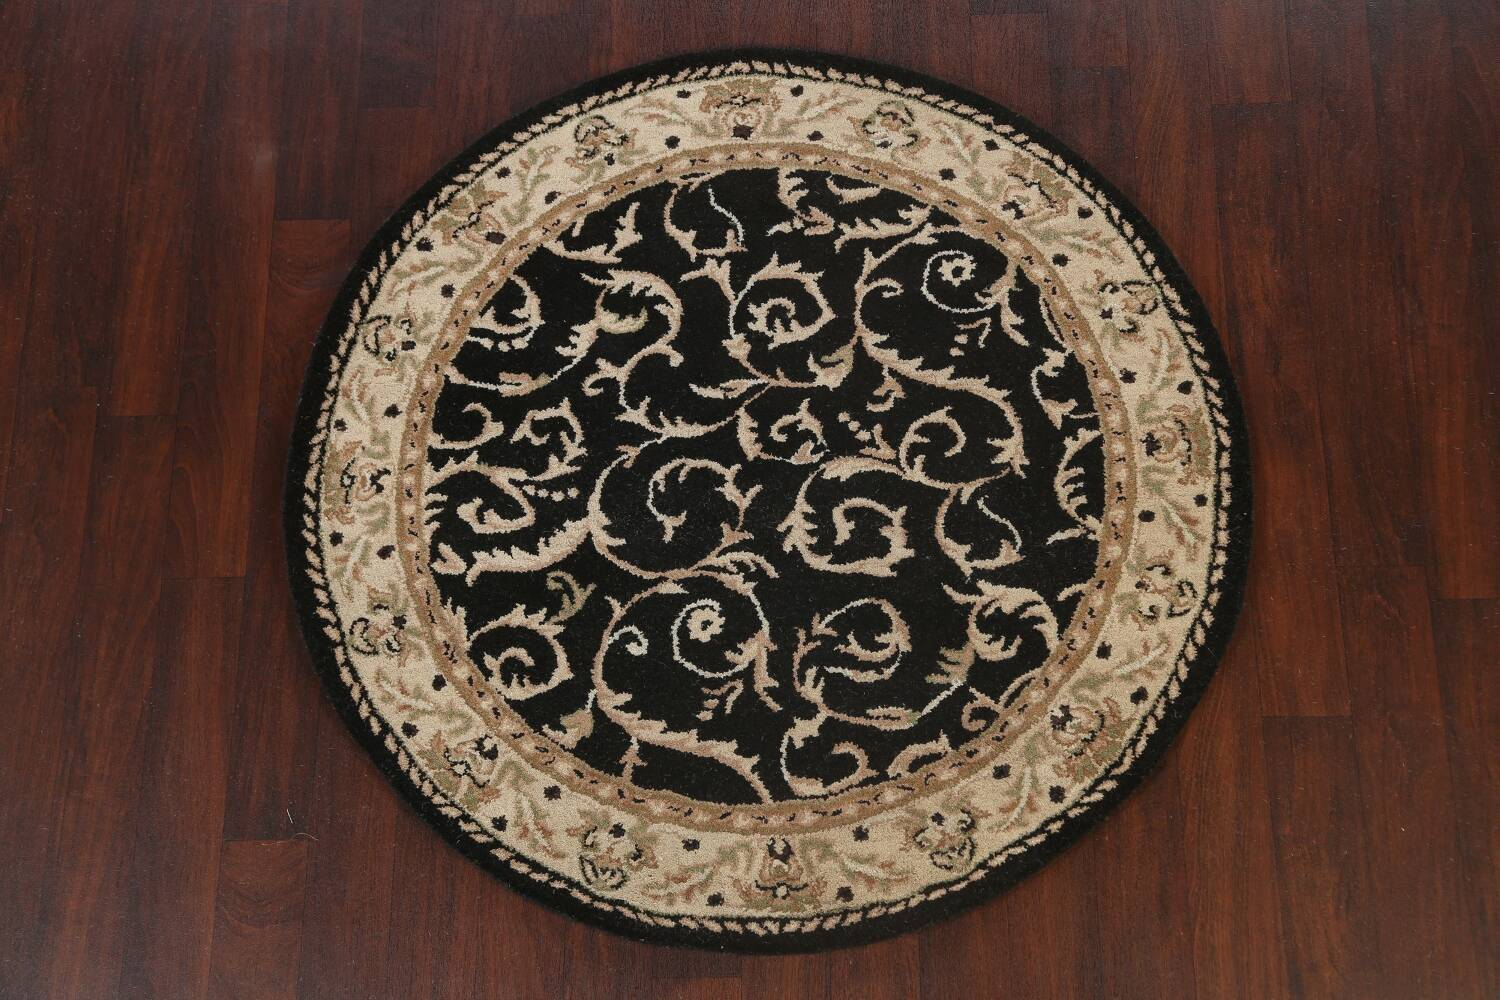 Floral Round Rug 5x5 image 2